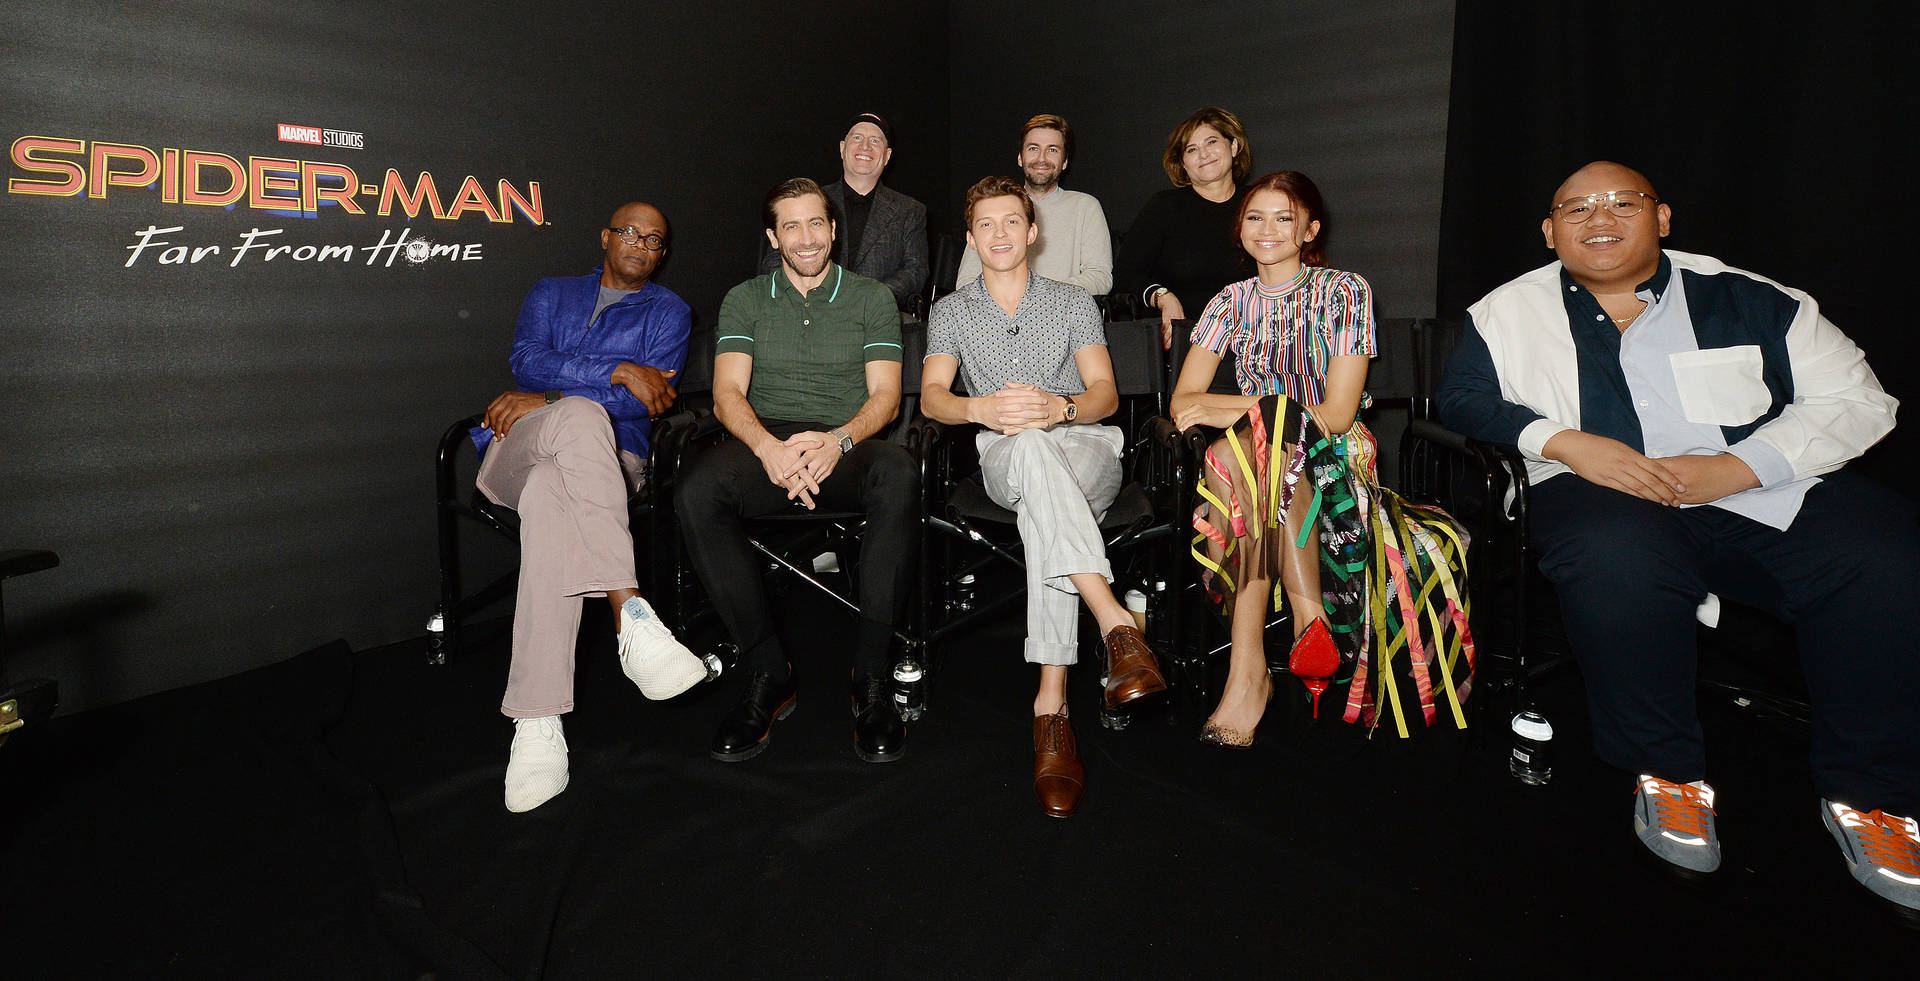 Spider-Man: Far From Home Reactions Shoot Onto the Web!